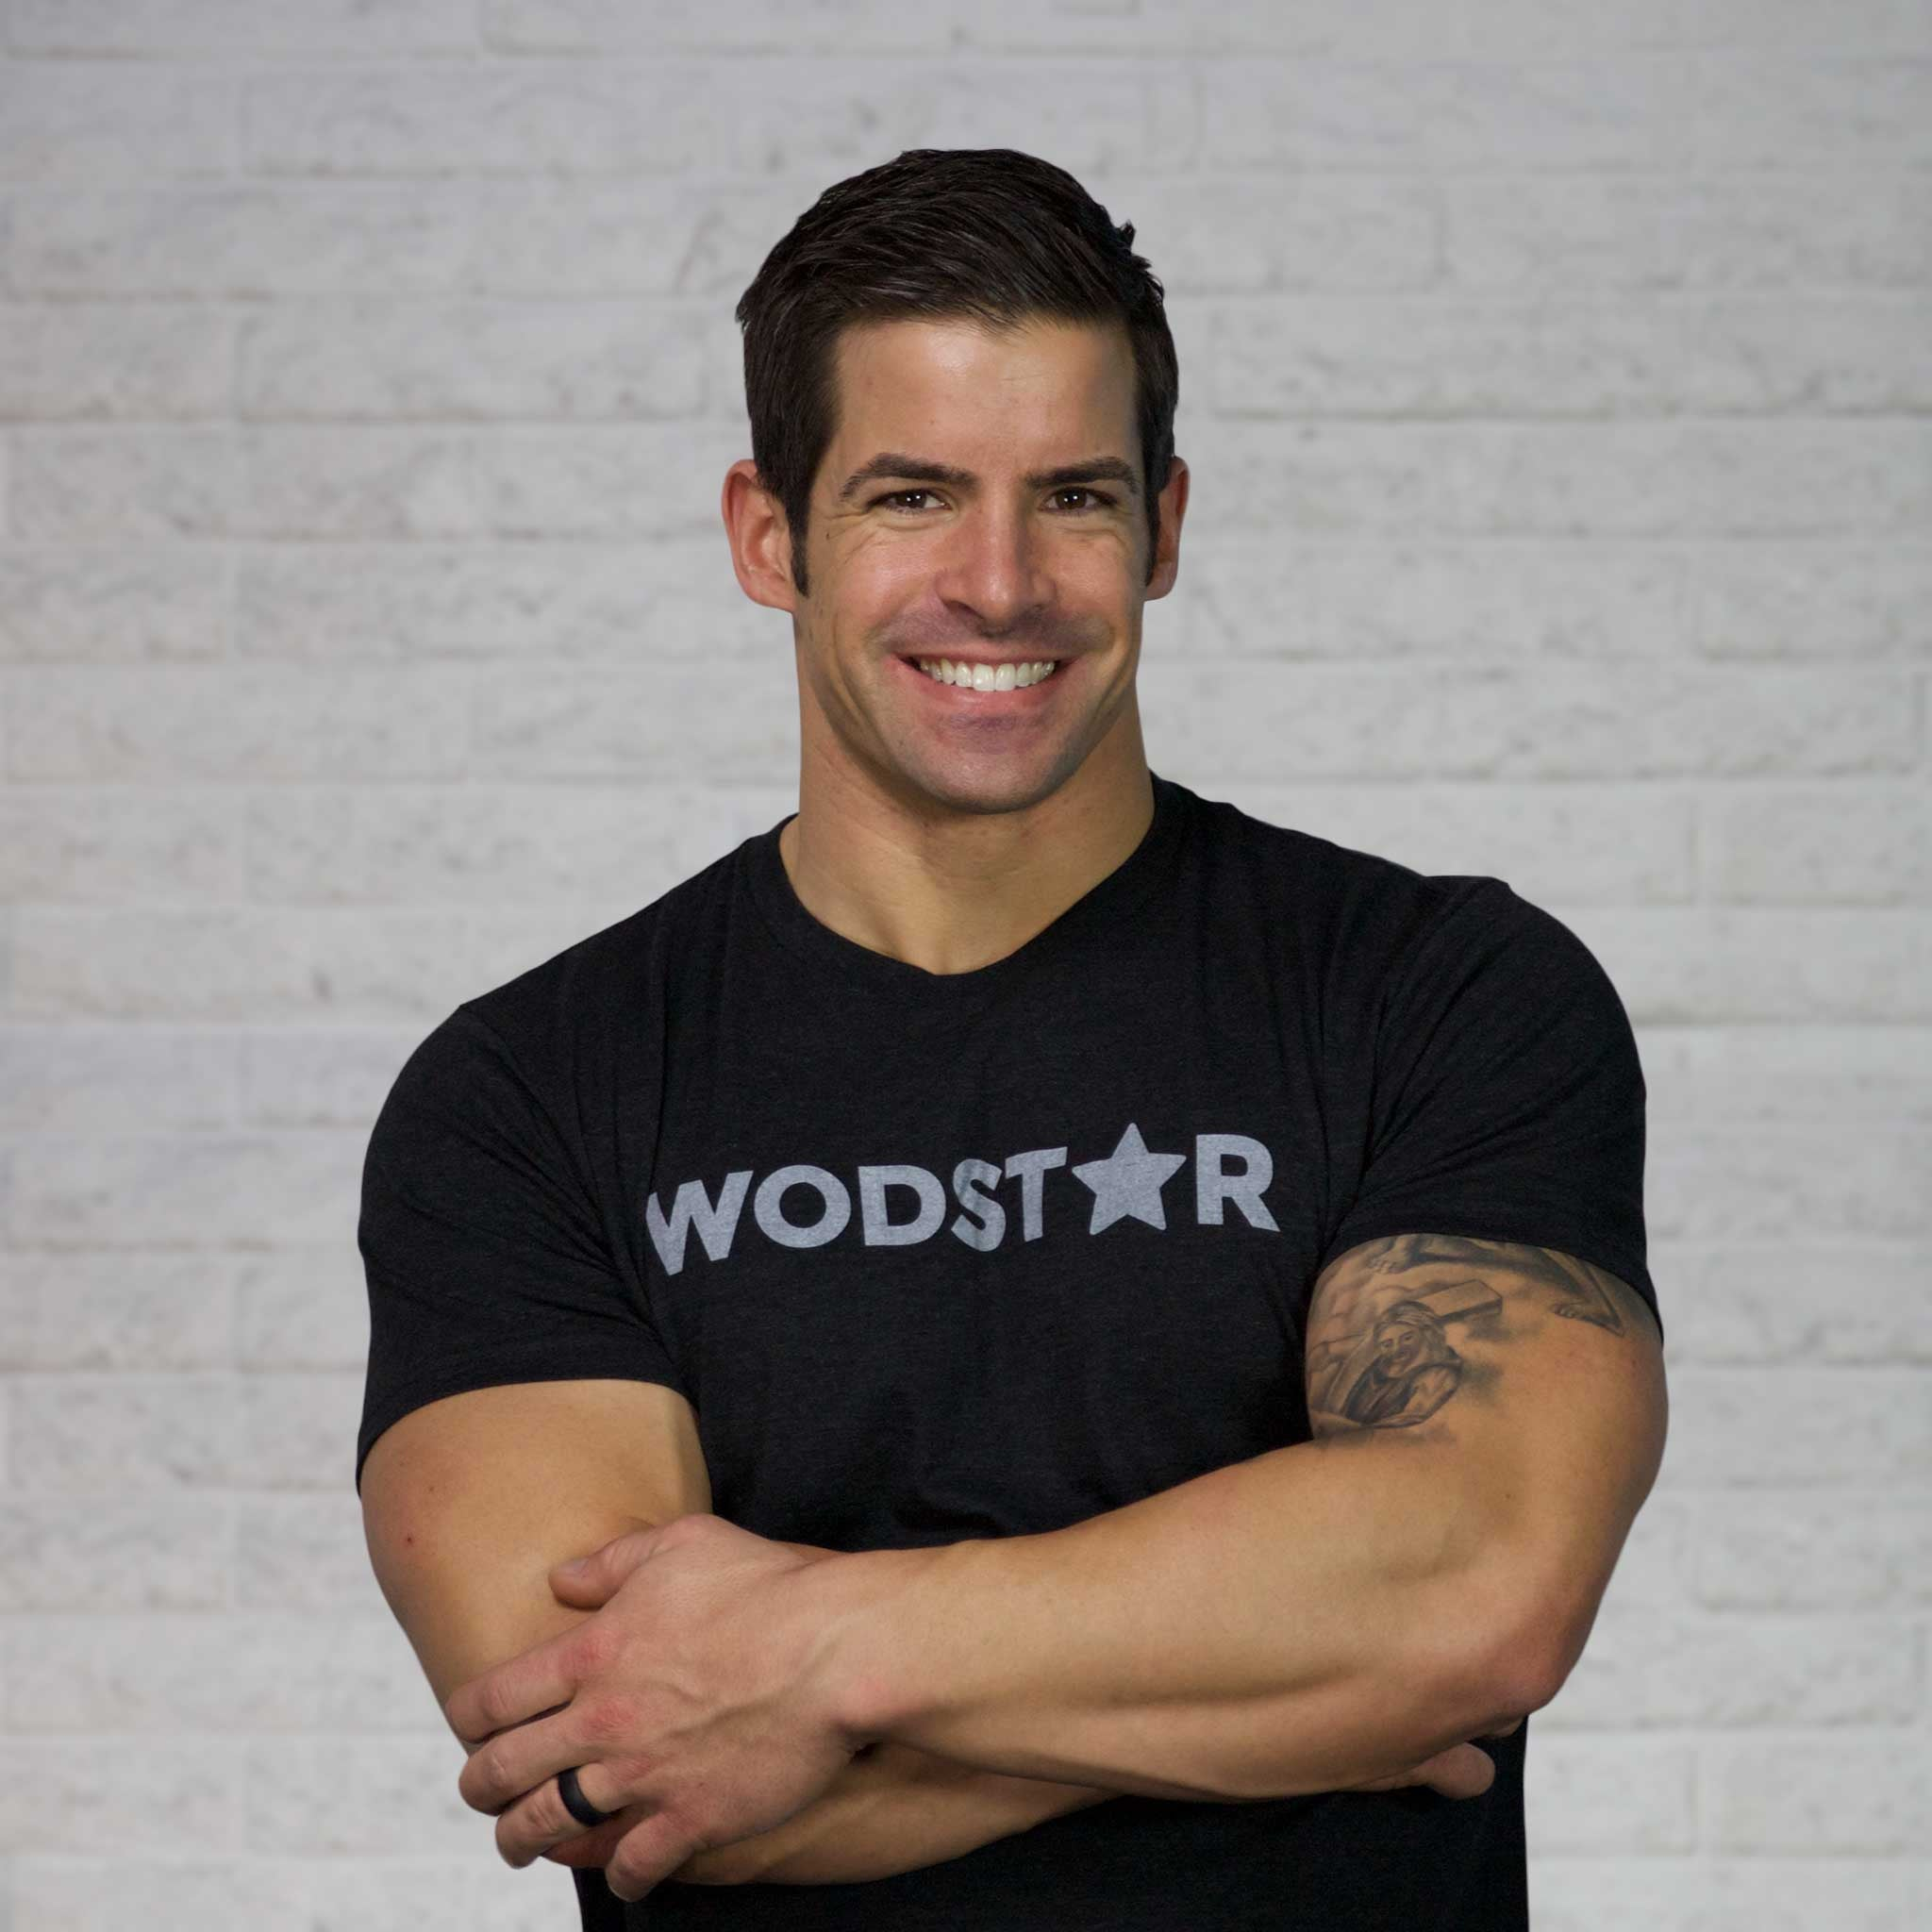 Men's Wodstar Workout T-Shirt: Vintage Black